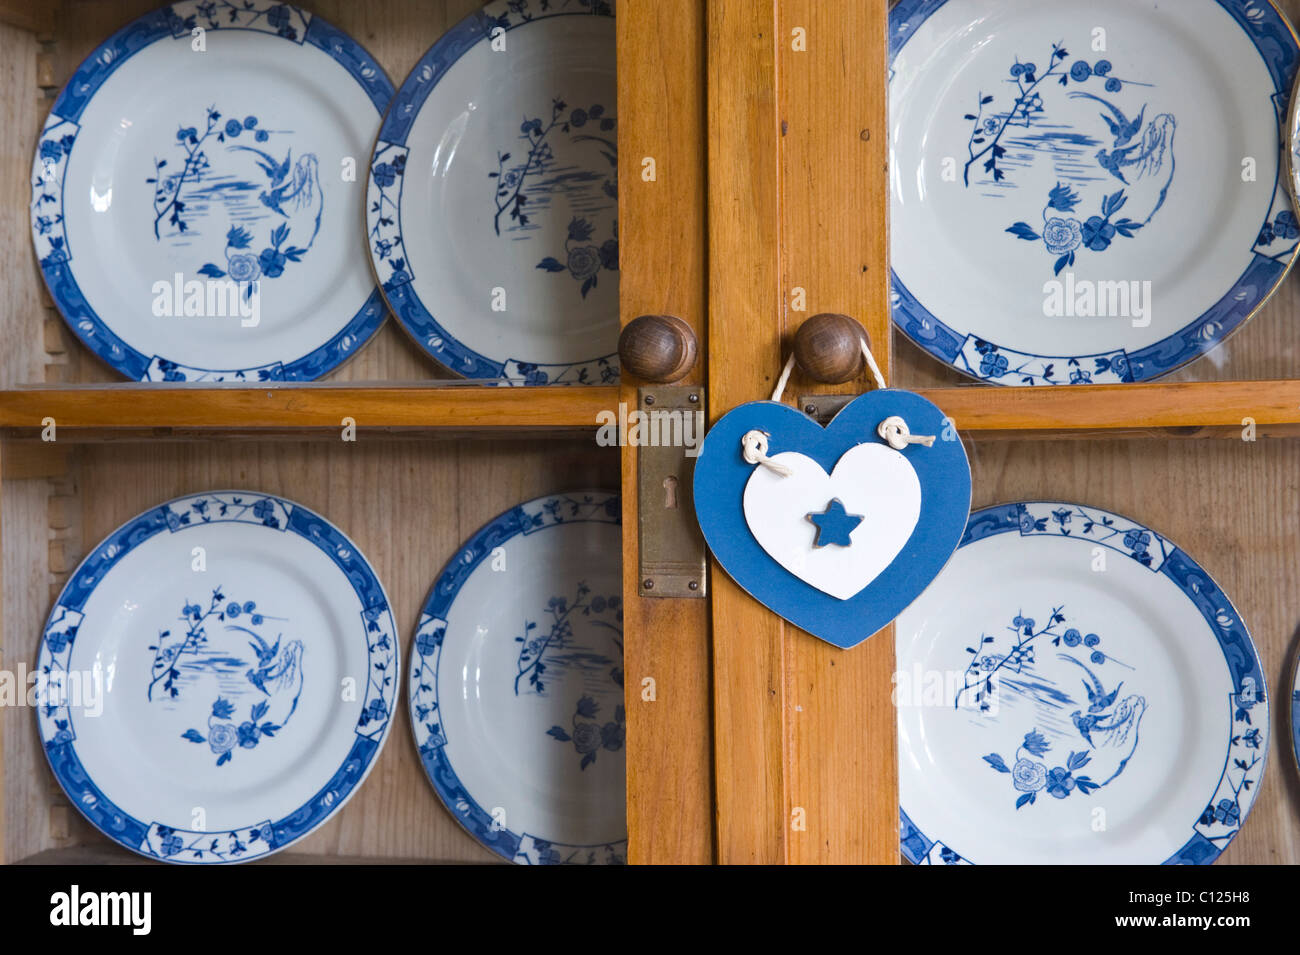 China cabinet with blue and white plates in the lounge of a house in UK - Stock Image